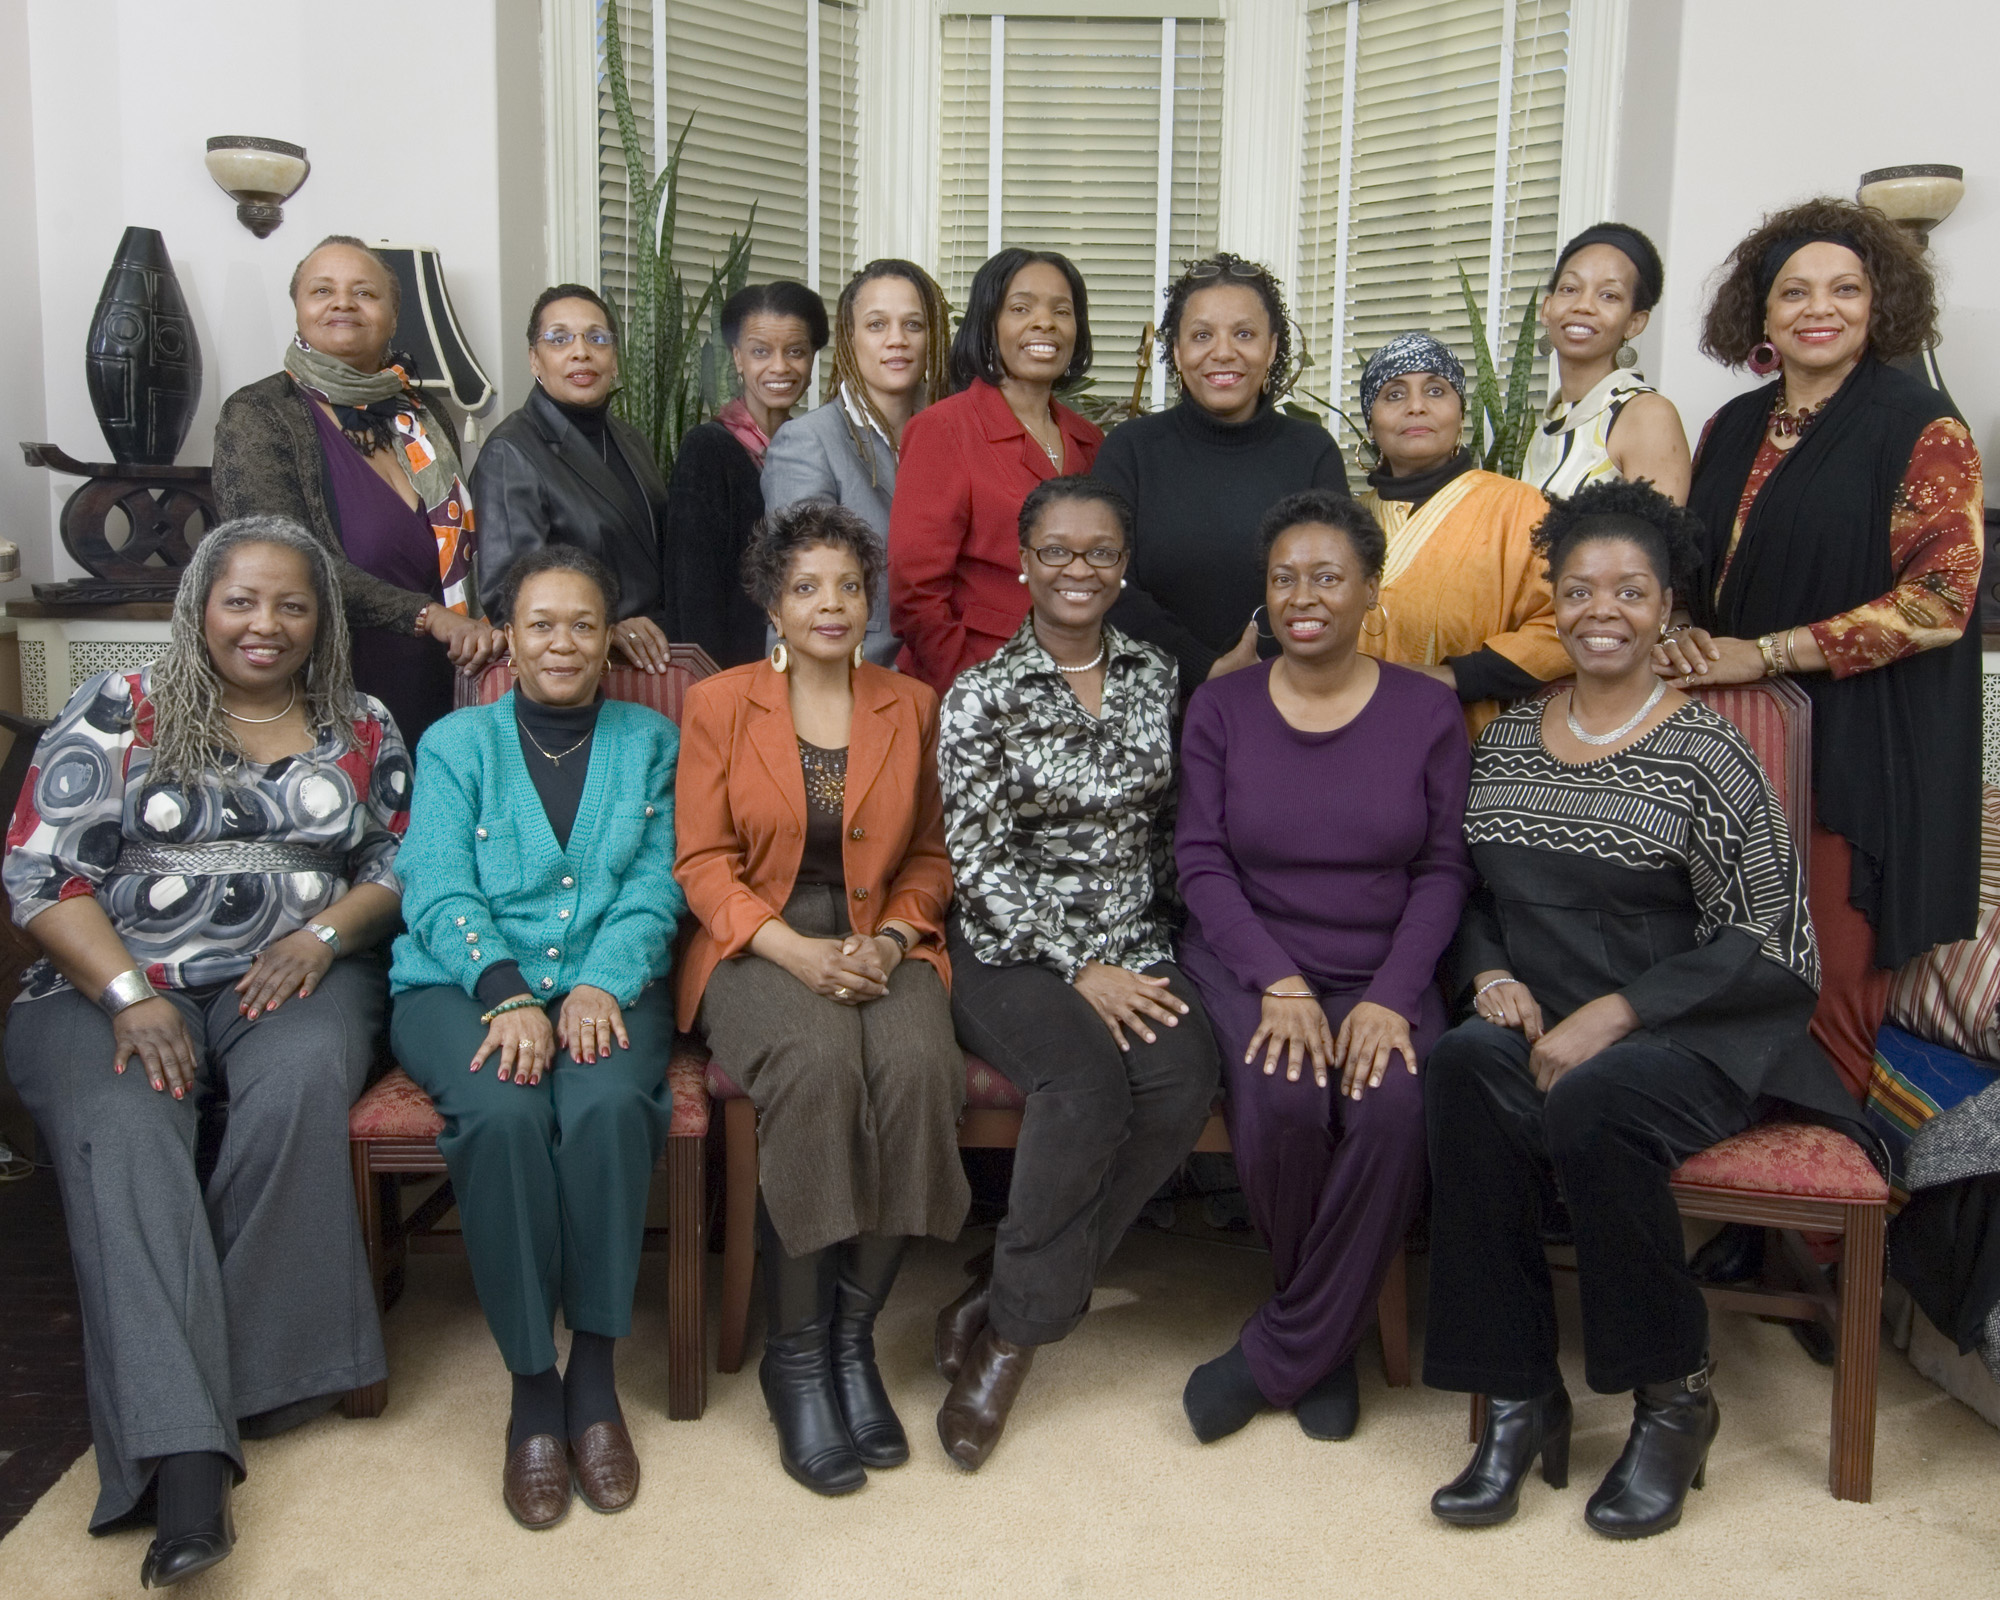 Black Women Group 66